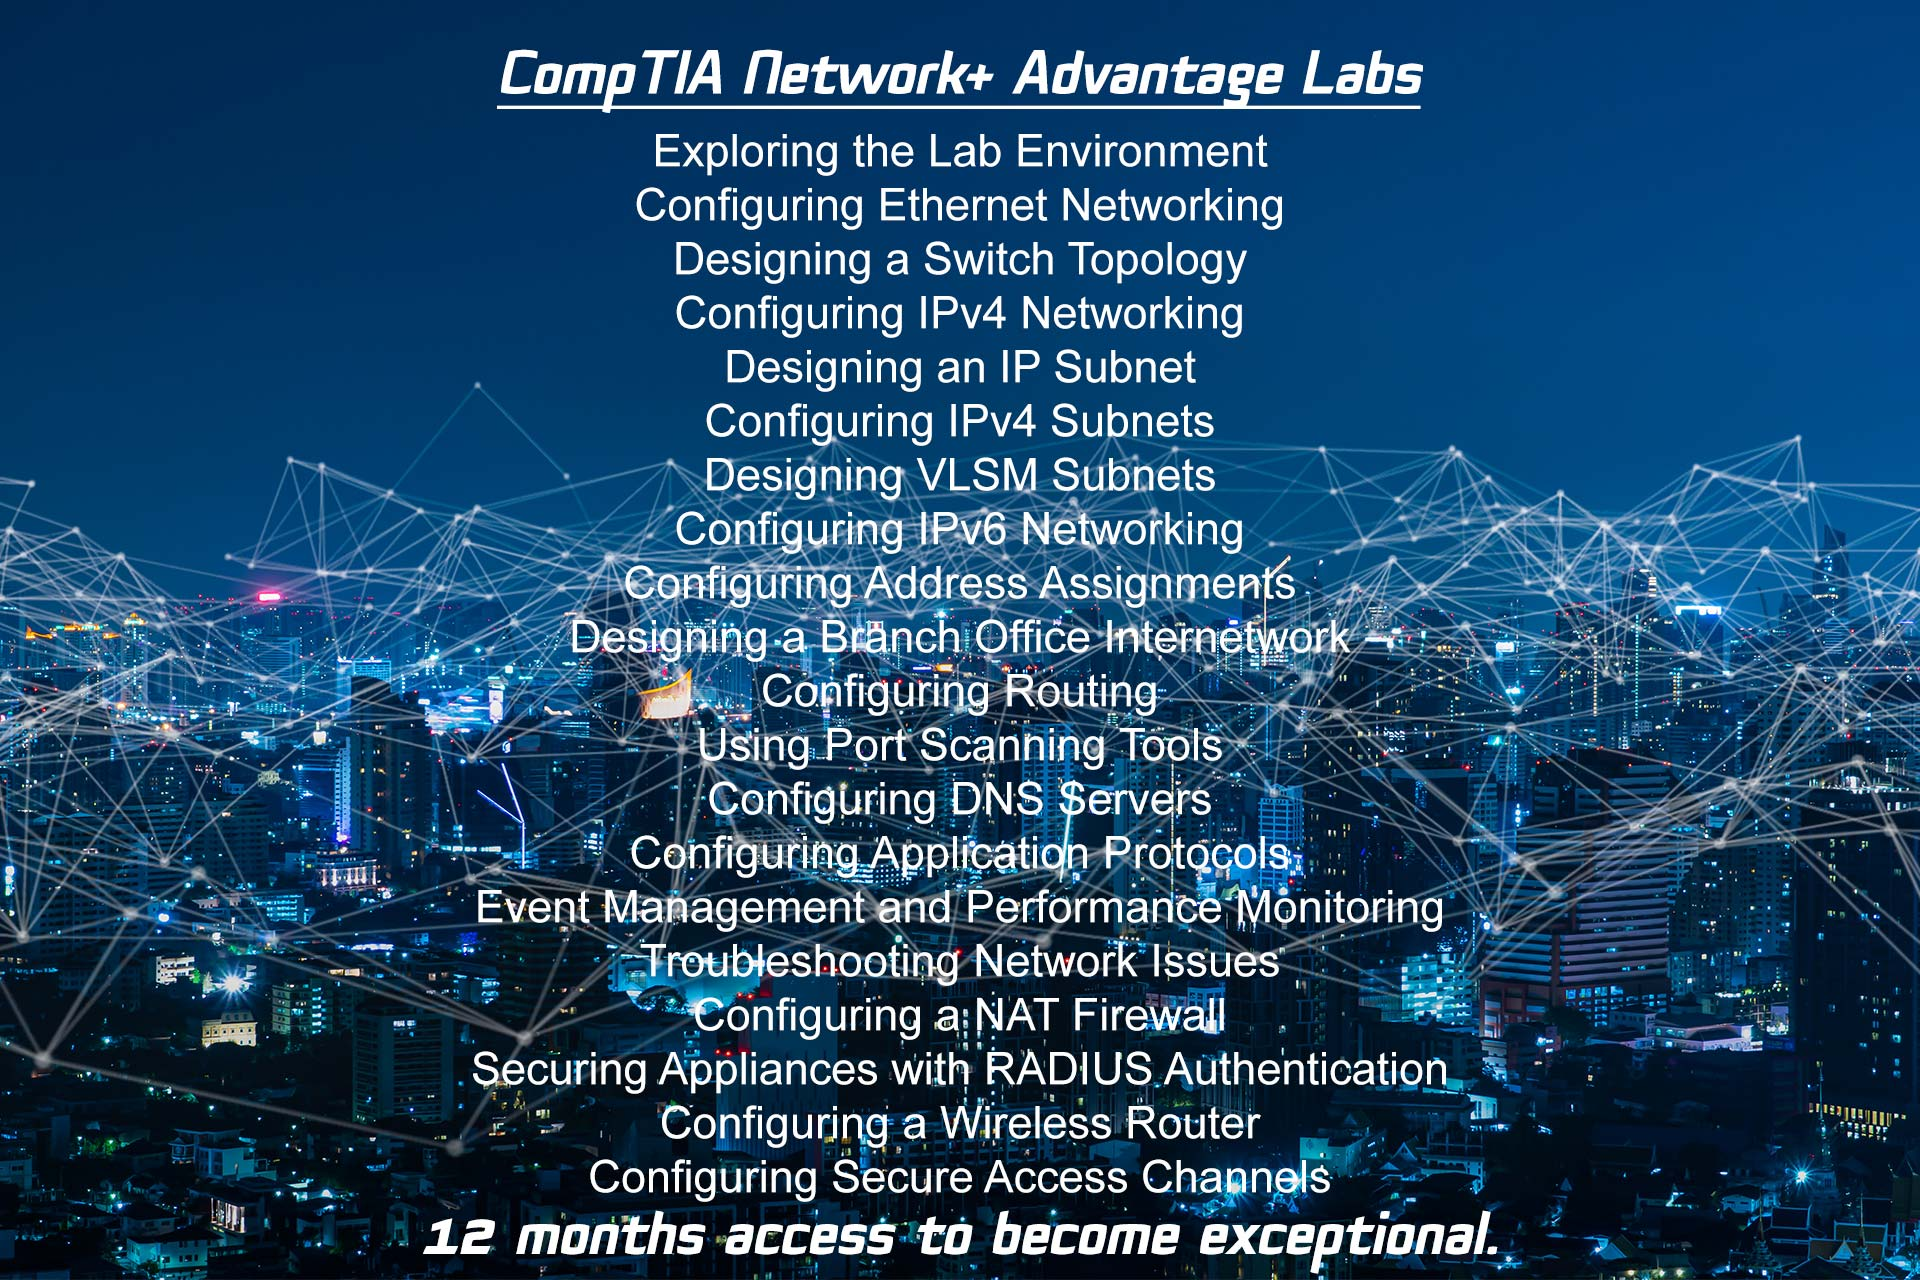 Master the CompTIA Network+ Tools, Systems and Networks.